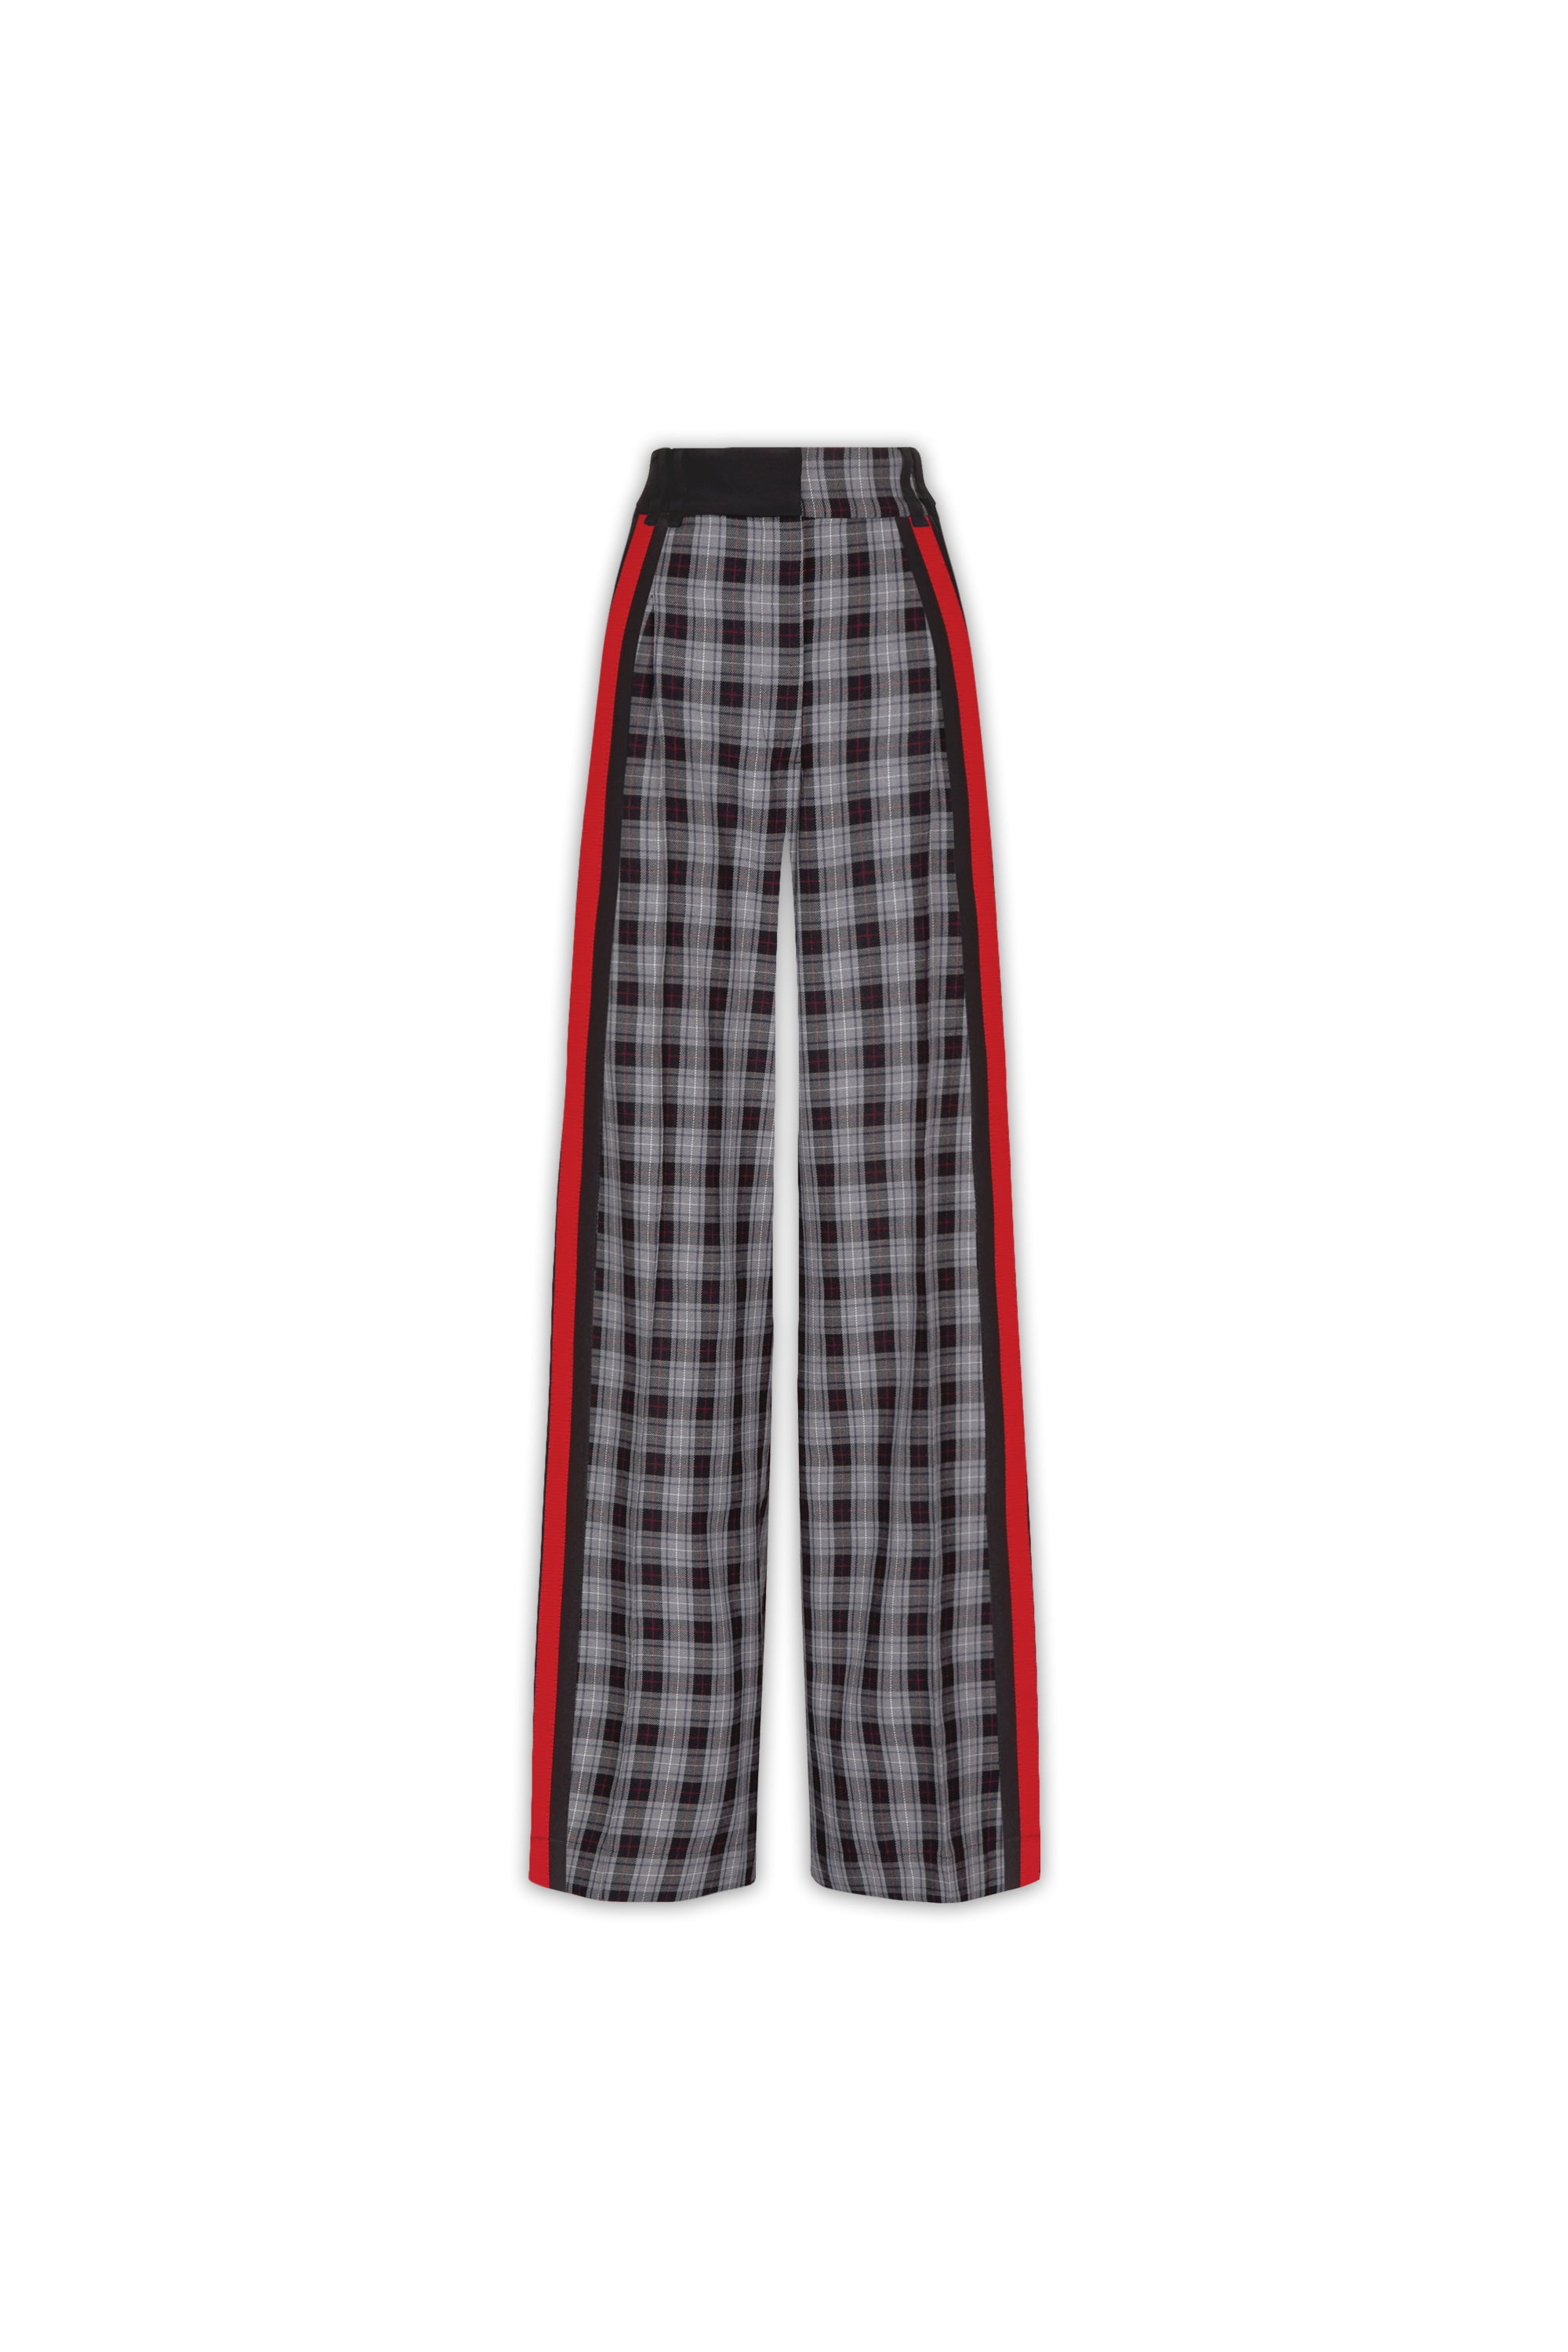 The Serena Trouser - Grey, Black & Poppy Red Plaid Cotton - SERENA BUTE